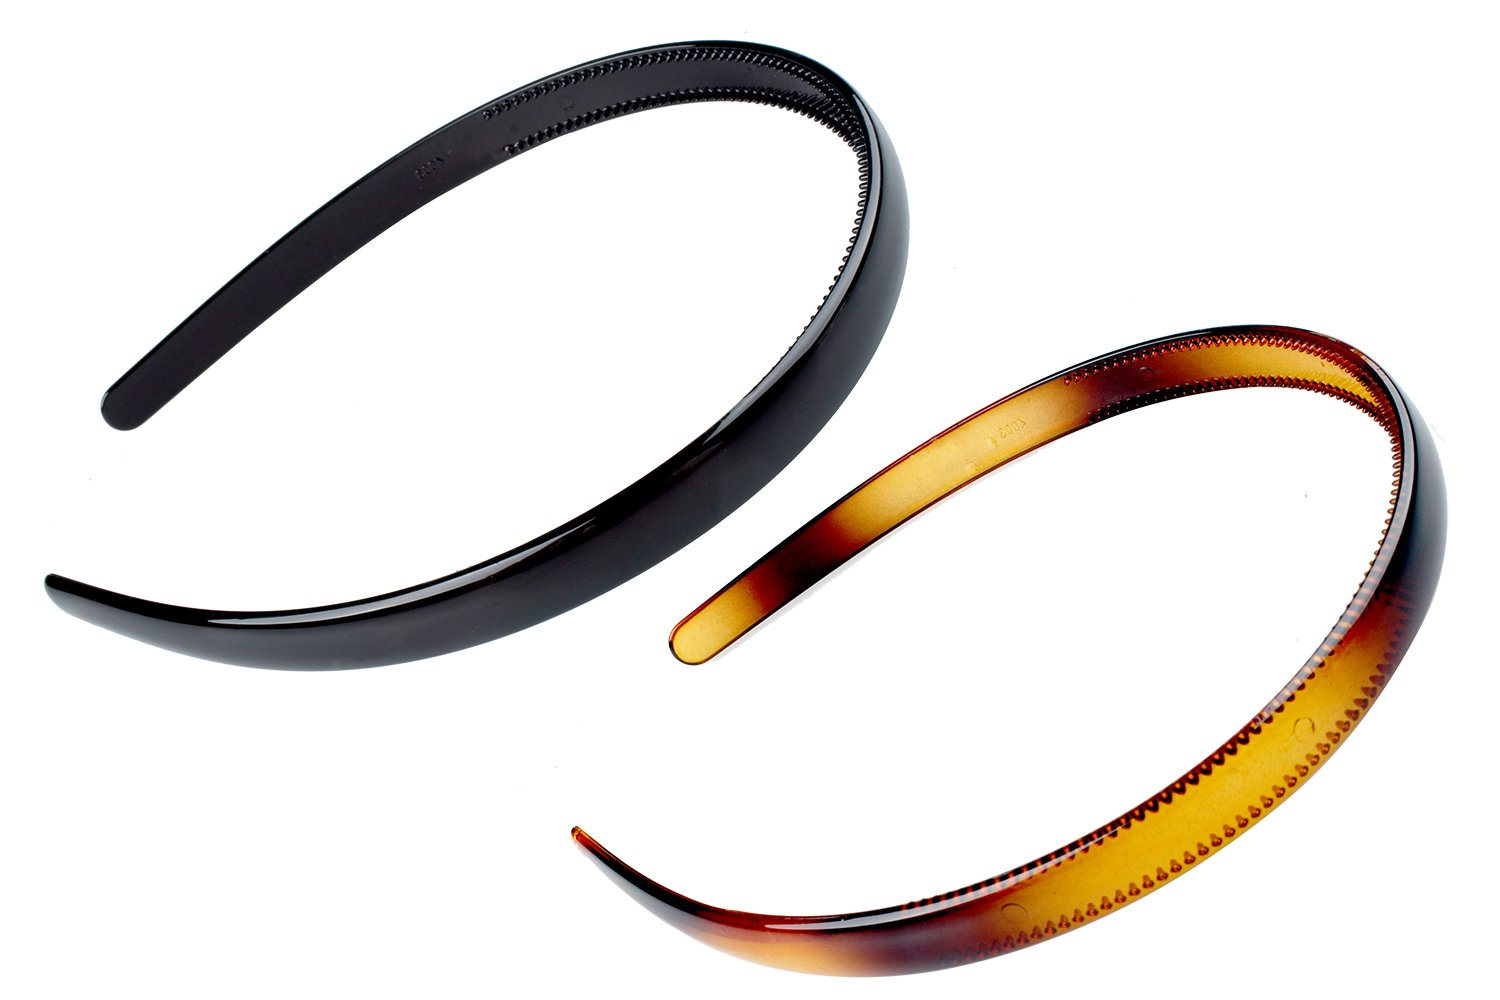 KALIYOTO Set Of 2 Zig Zag Black Plastic Sharks Tooth Hair Comb Headband (1 Black +1 Brown Color)